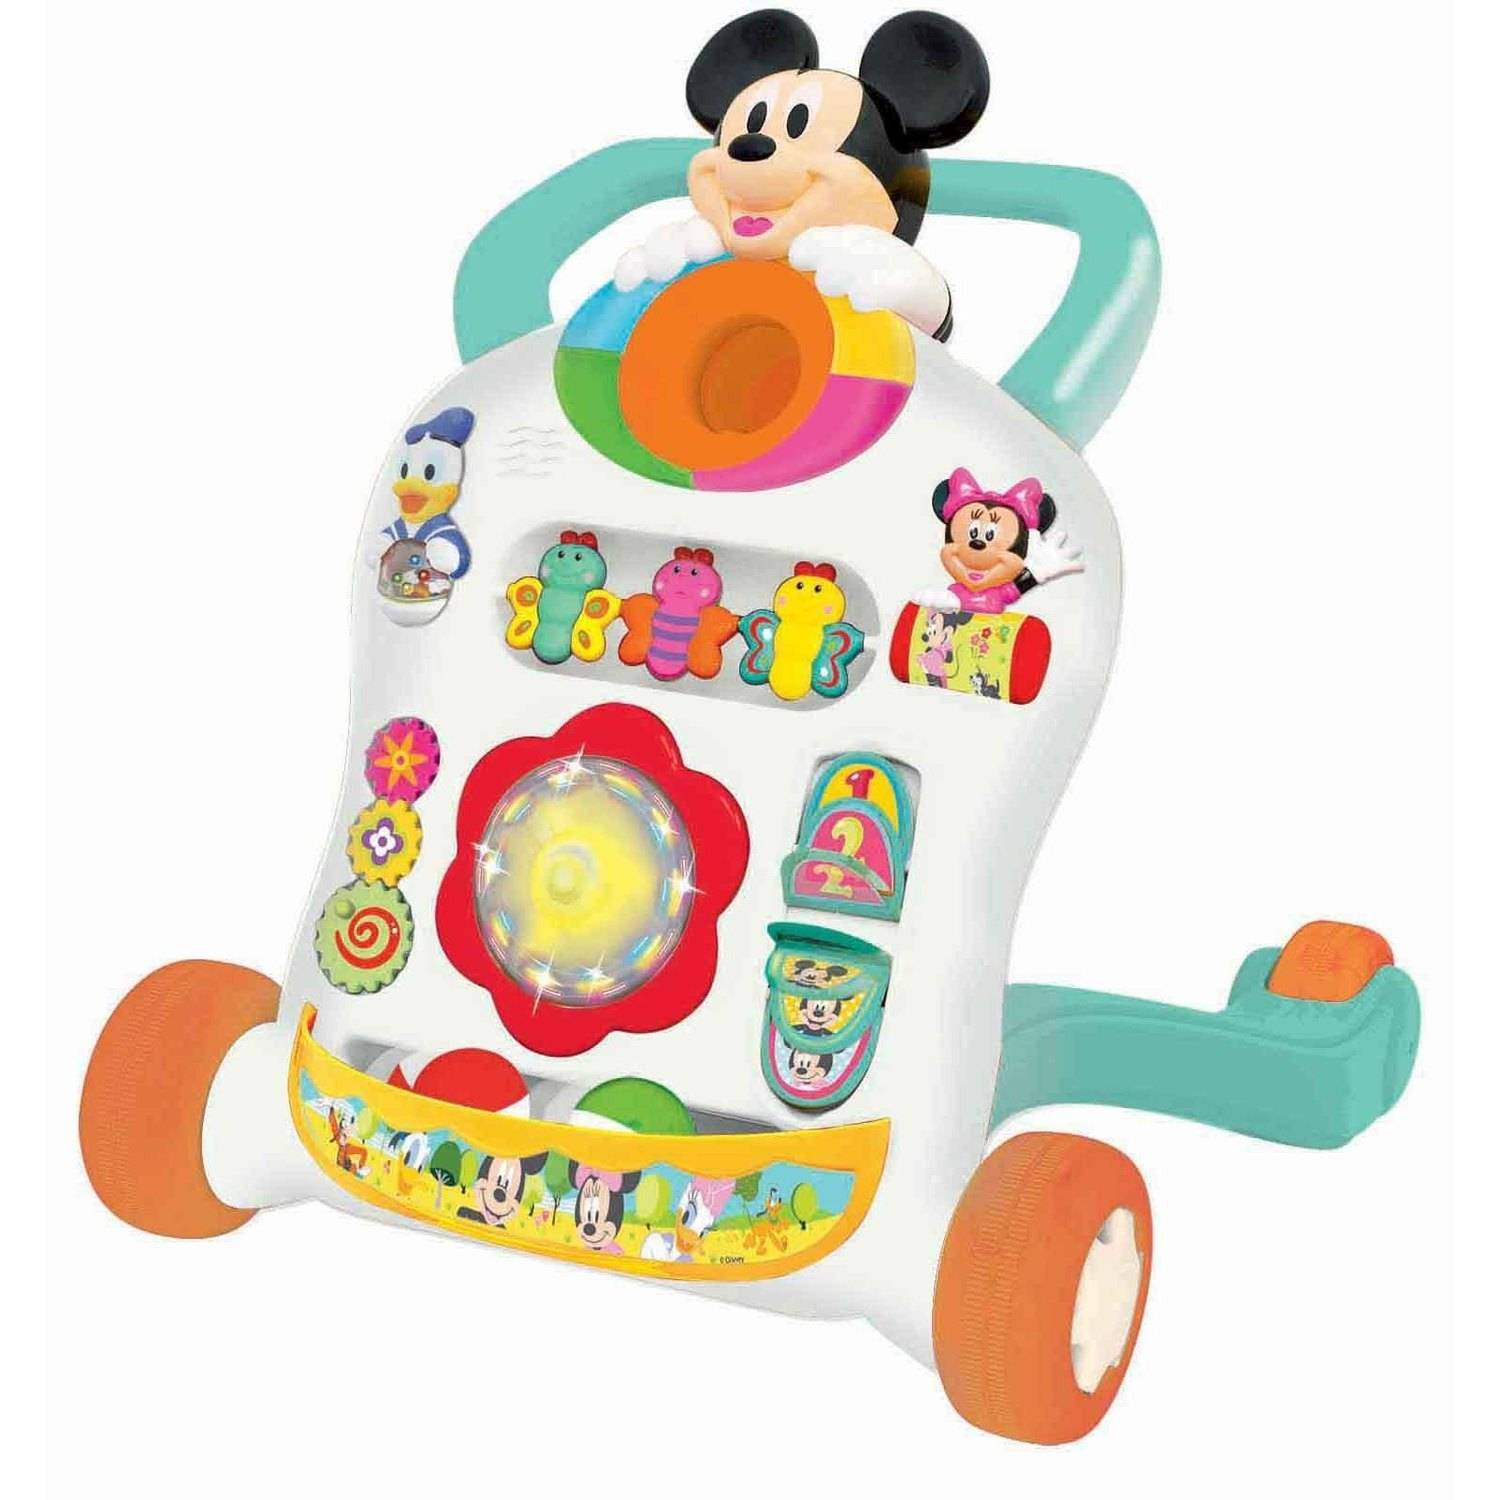 Kiddieland Disney Mickey Mouse and Friends Roll n' Go Walker by Disney